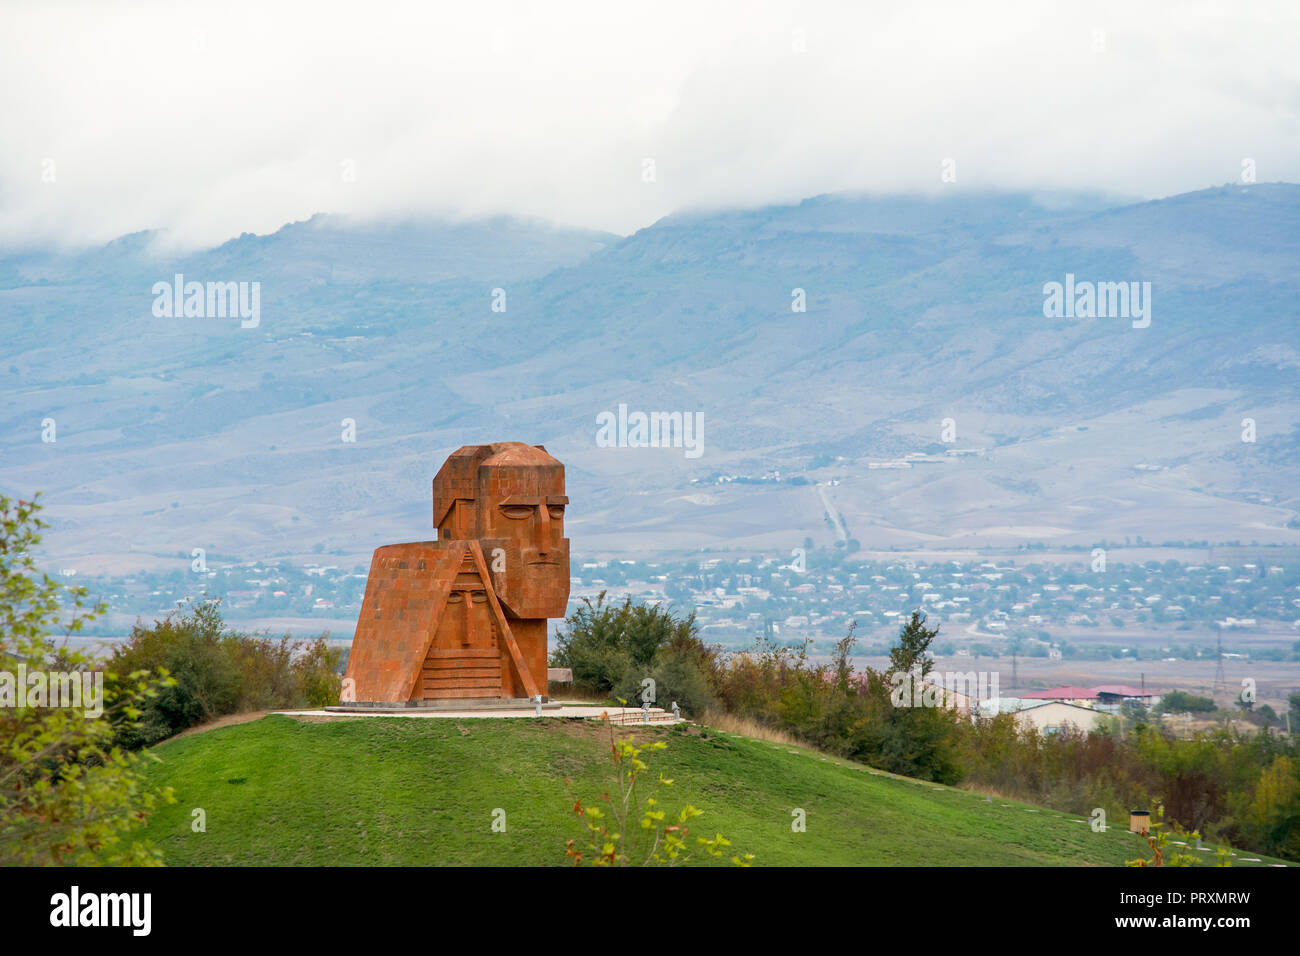 The 'We Are Our Mountains' sculpture on the out skirts of the capitol city Stepanakert of the disputed Nagorno-Karabakh Republic, as known as the Repu - Stock Image